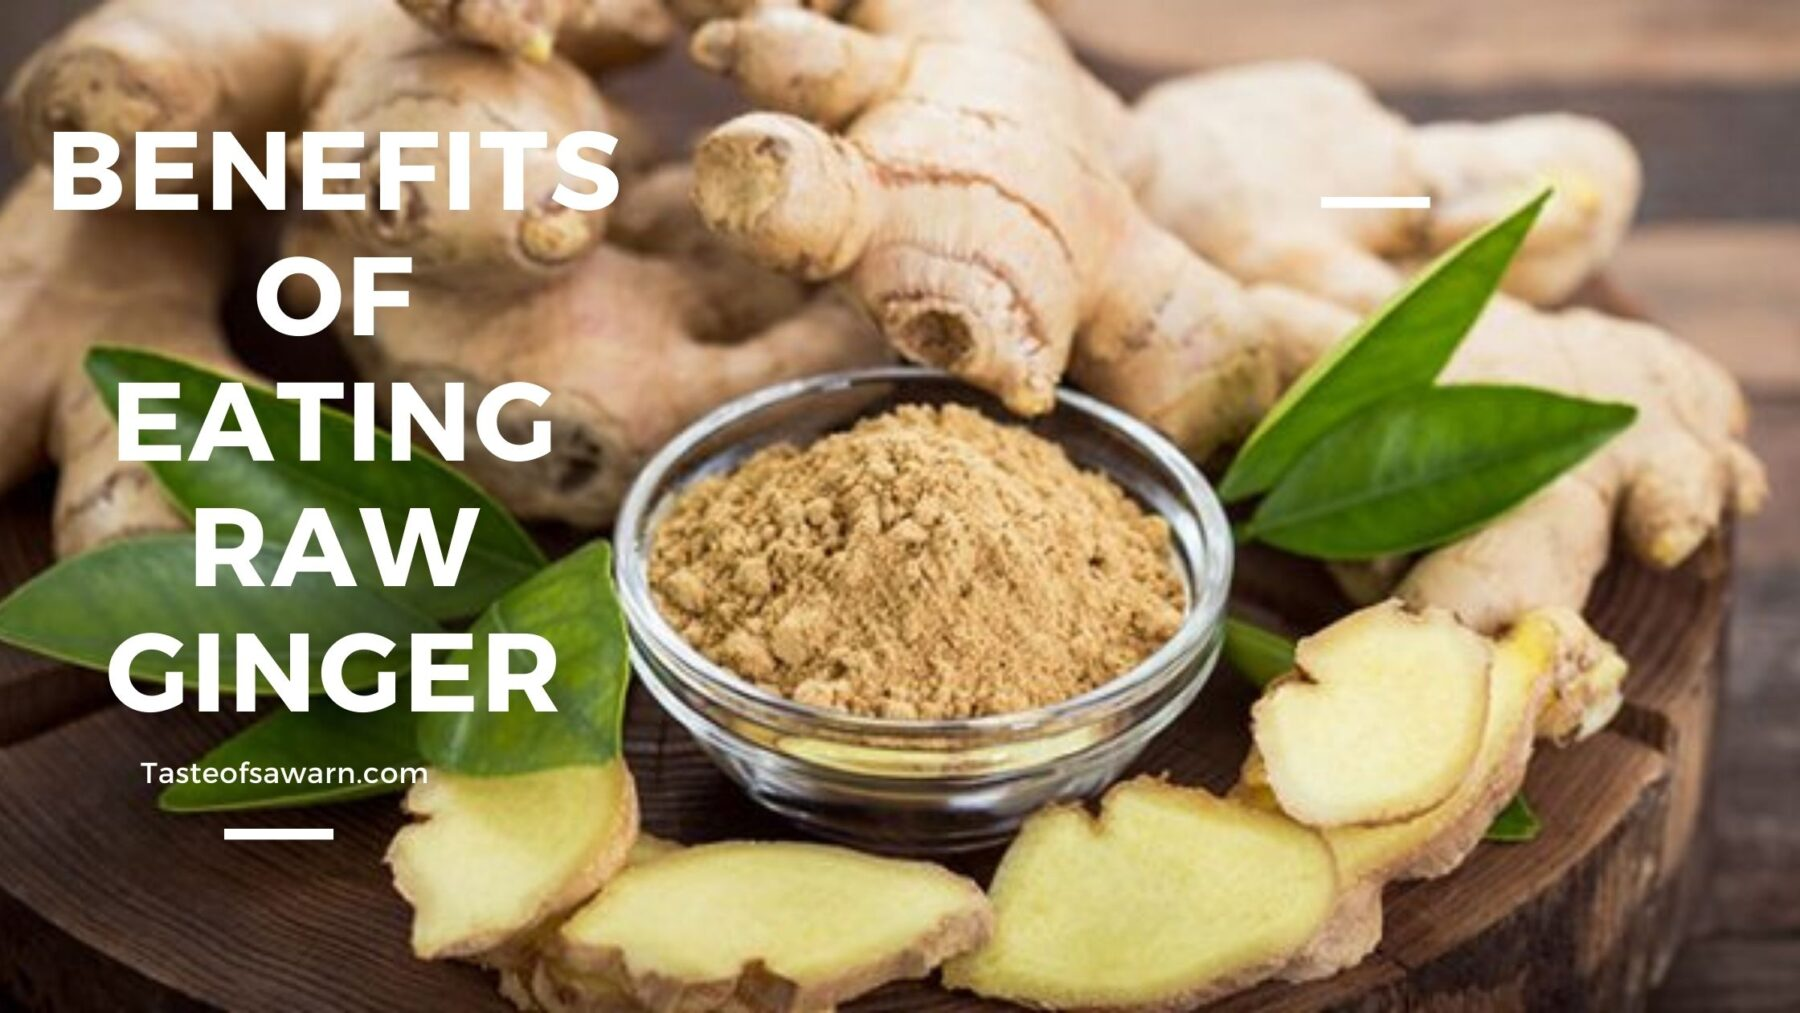 Benefits of Eating Raw Ginger in Empty Stomach